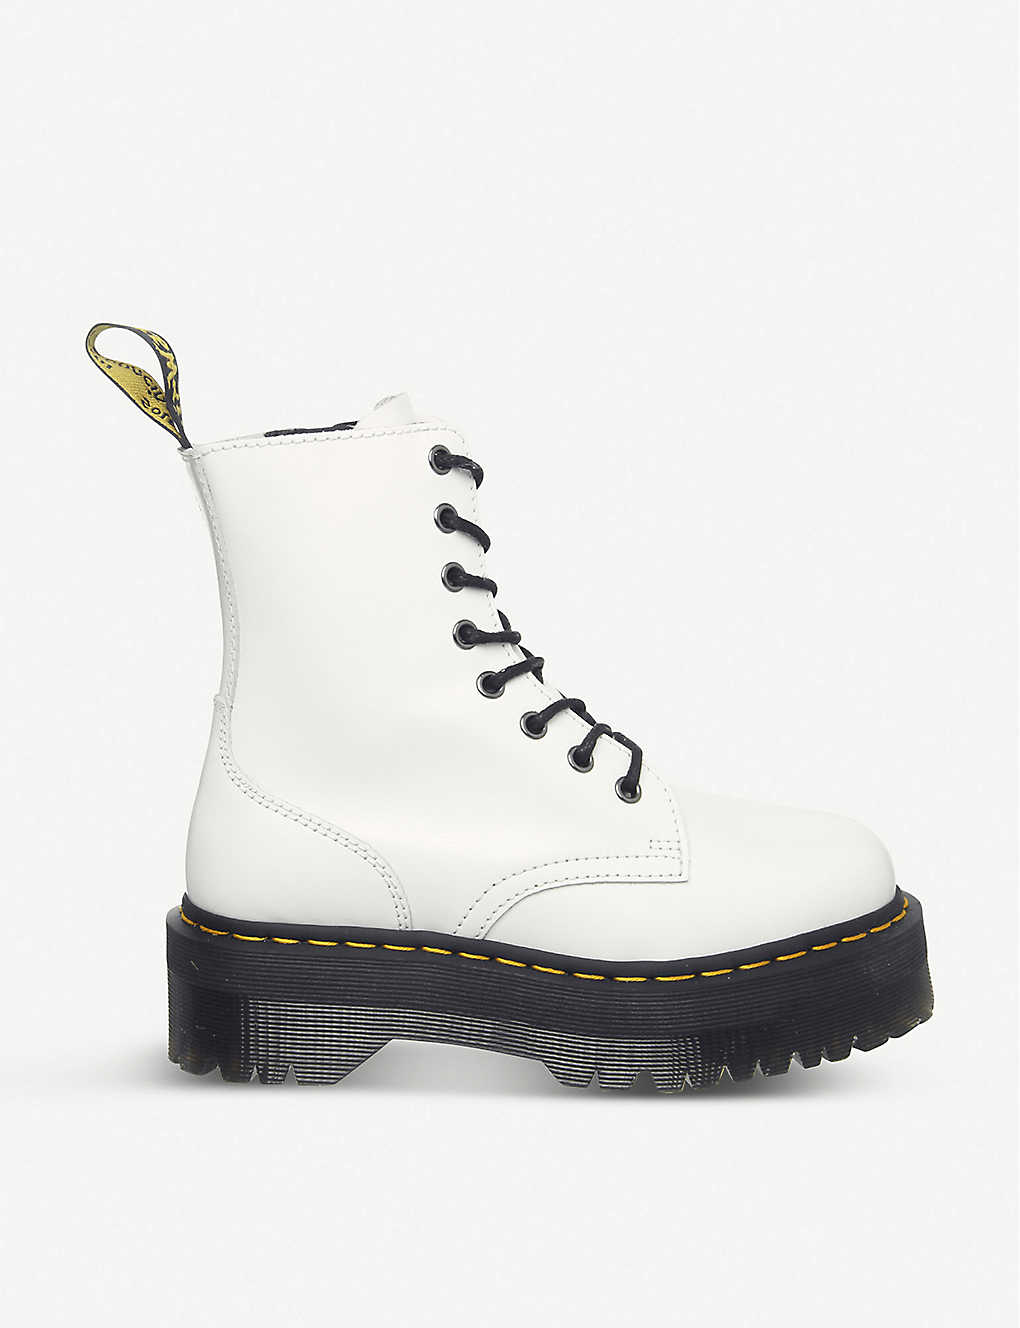 Jadon 8-eye leather platform boots - White